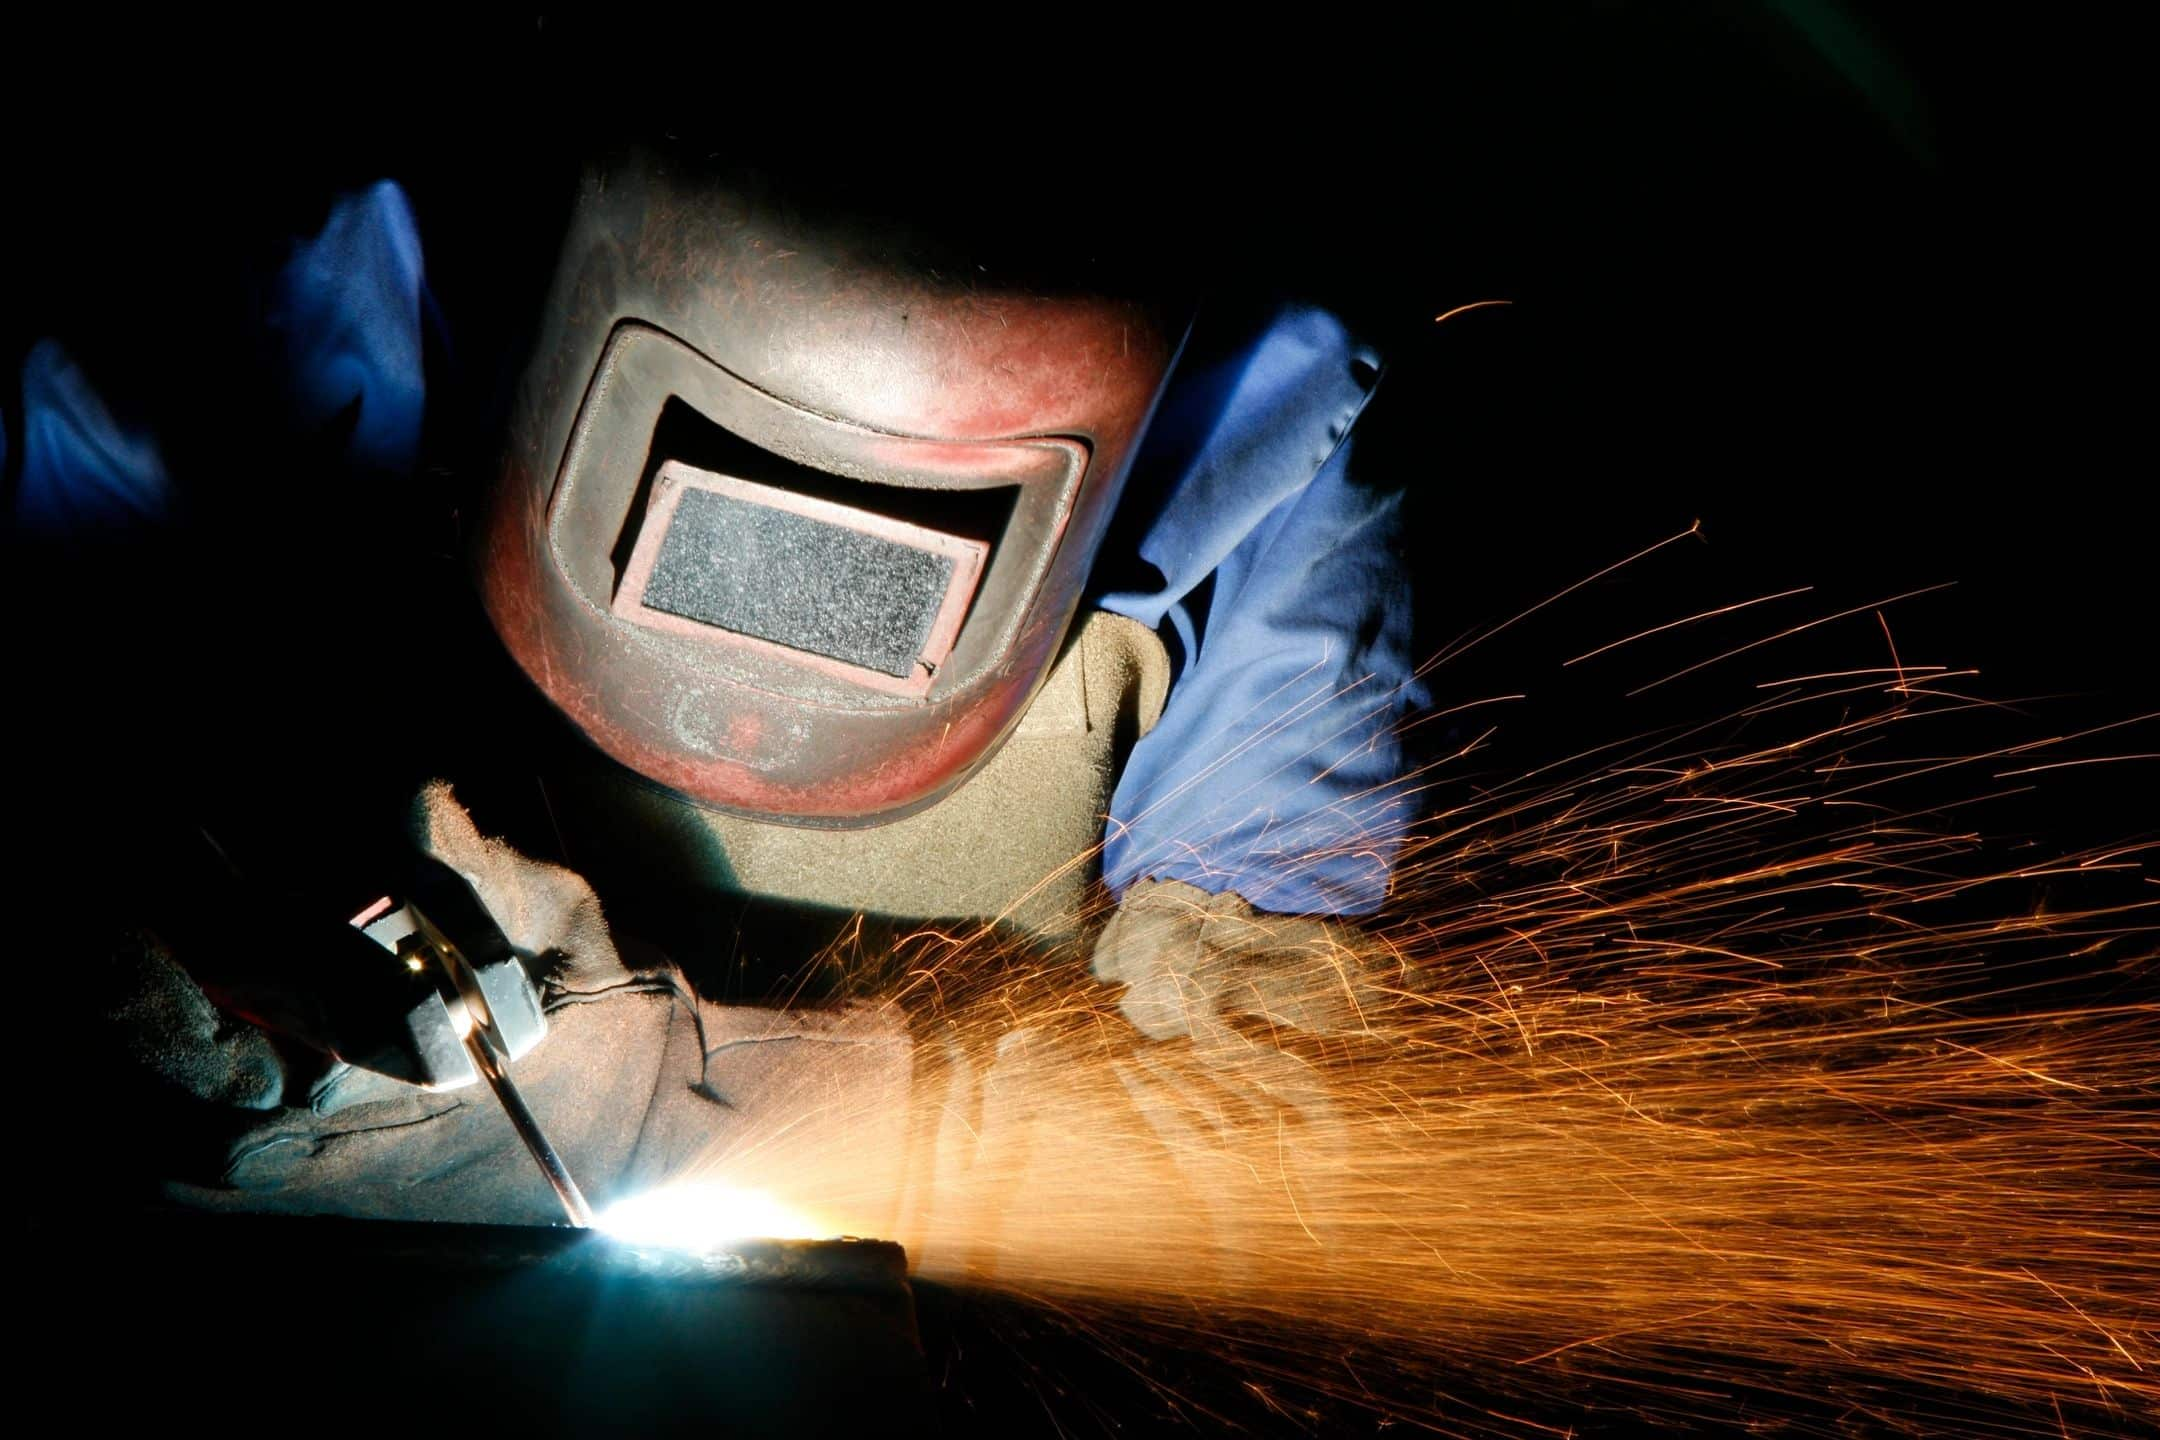 Welder with sparks on metal